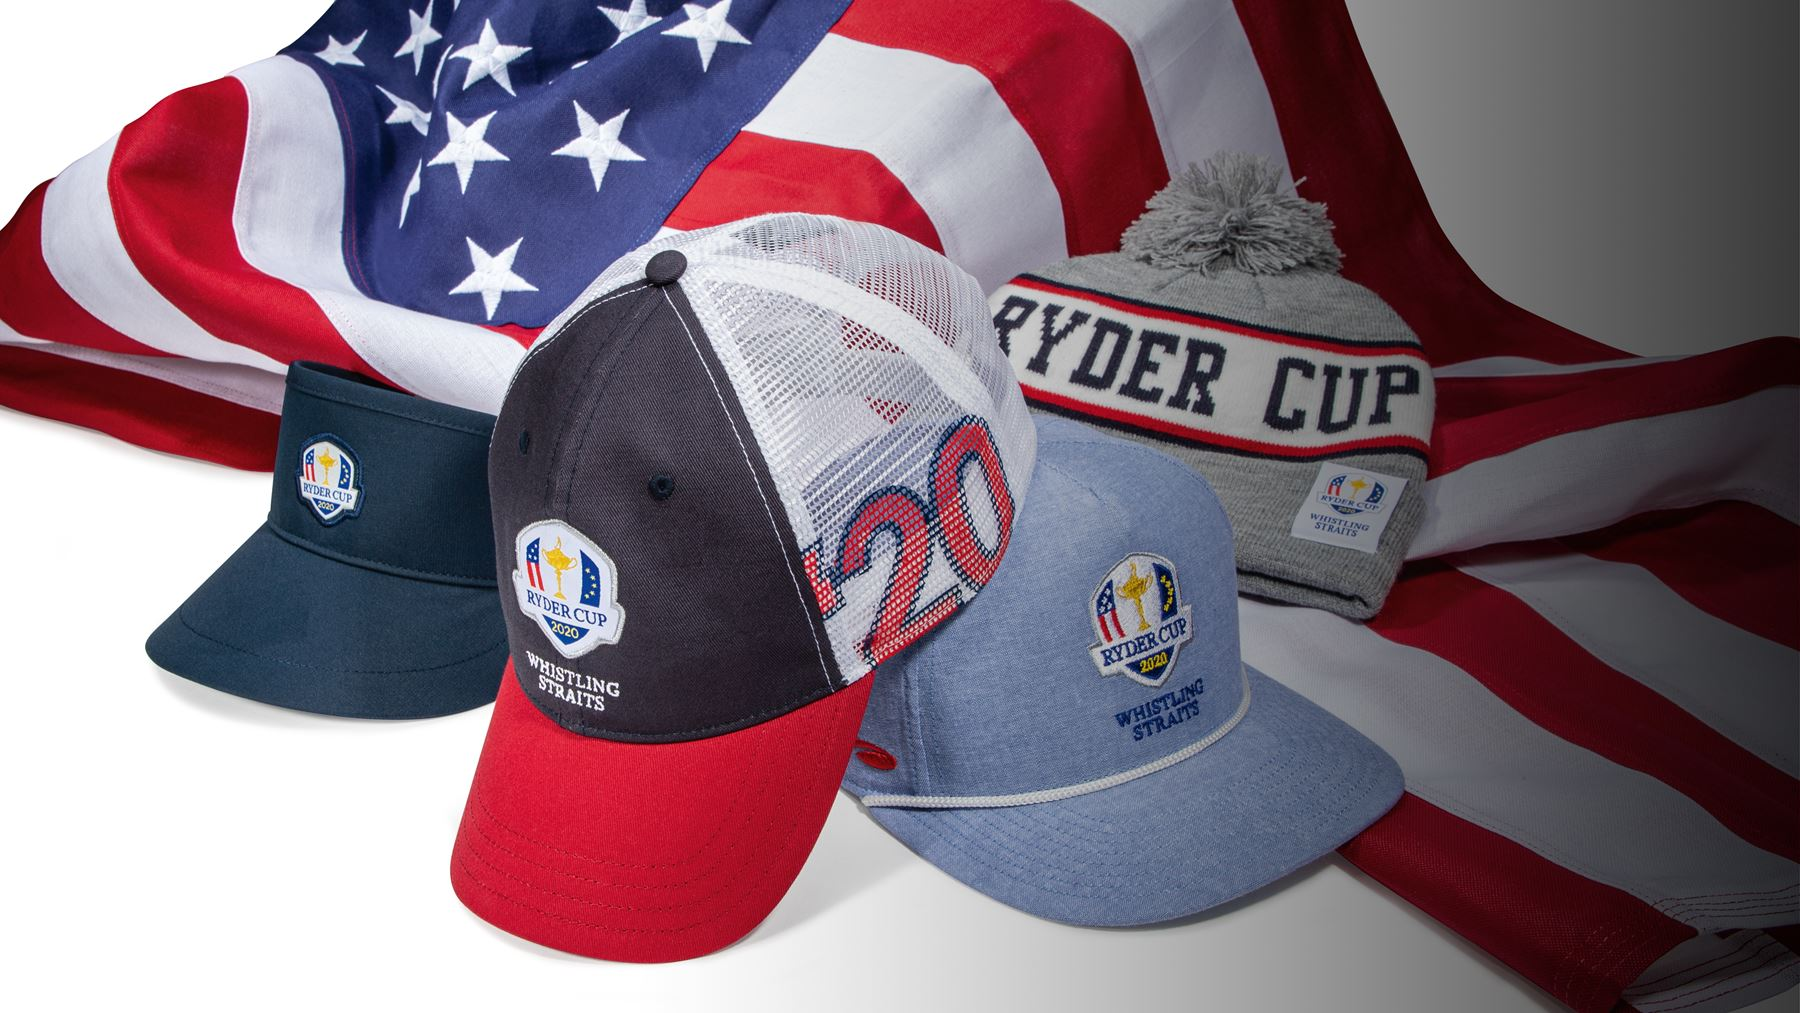 Ryder Cup 2020 Headwear on the American Flag